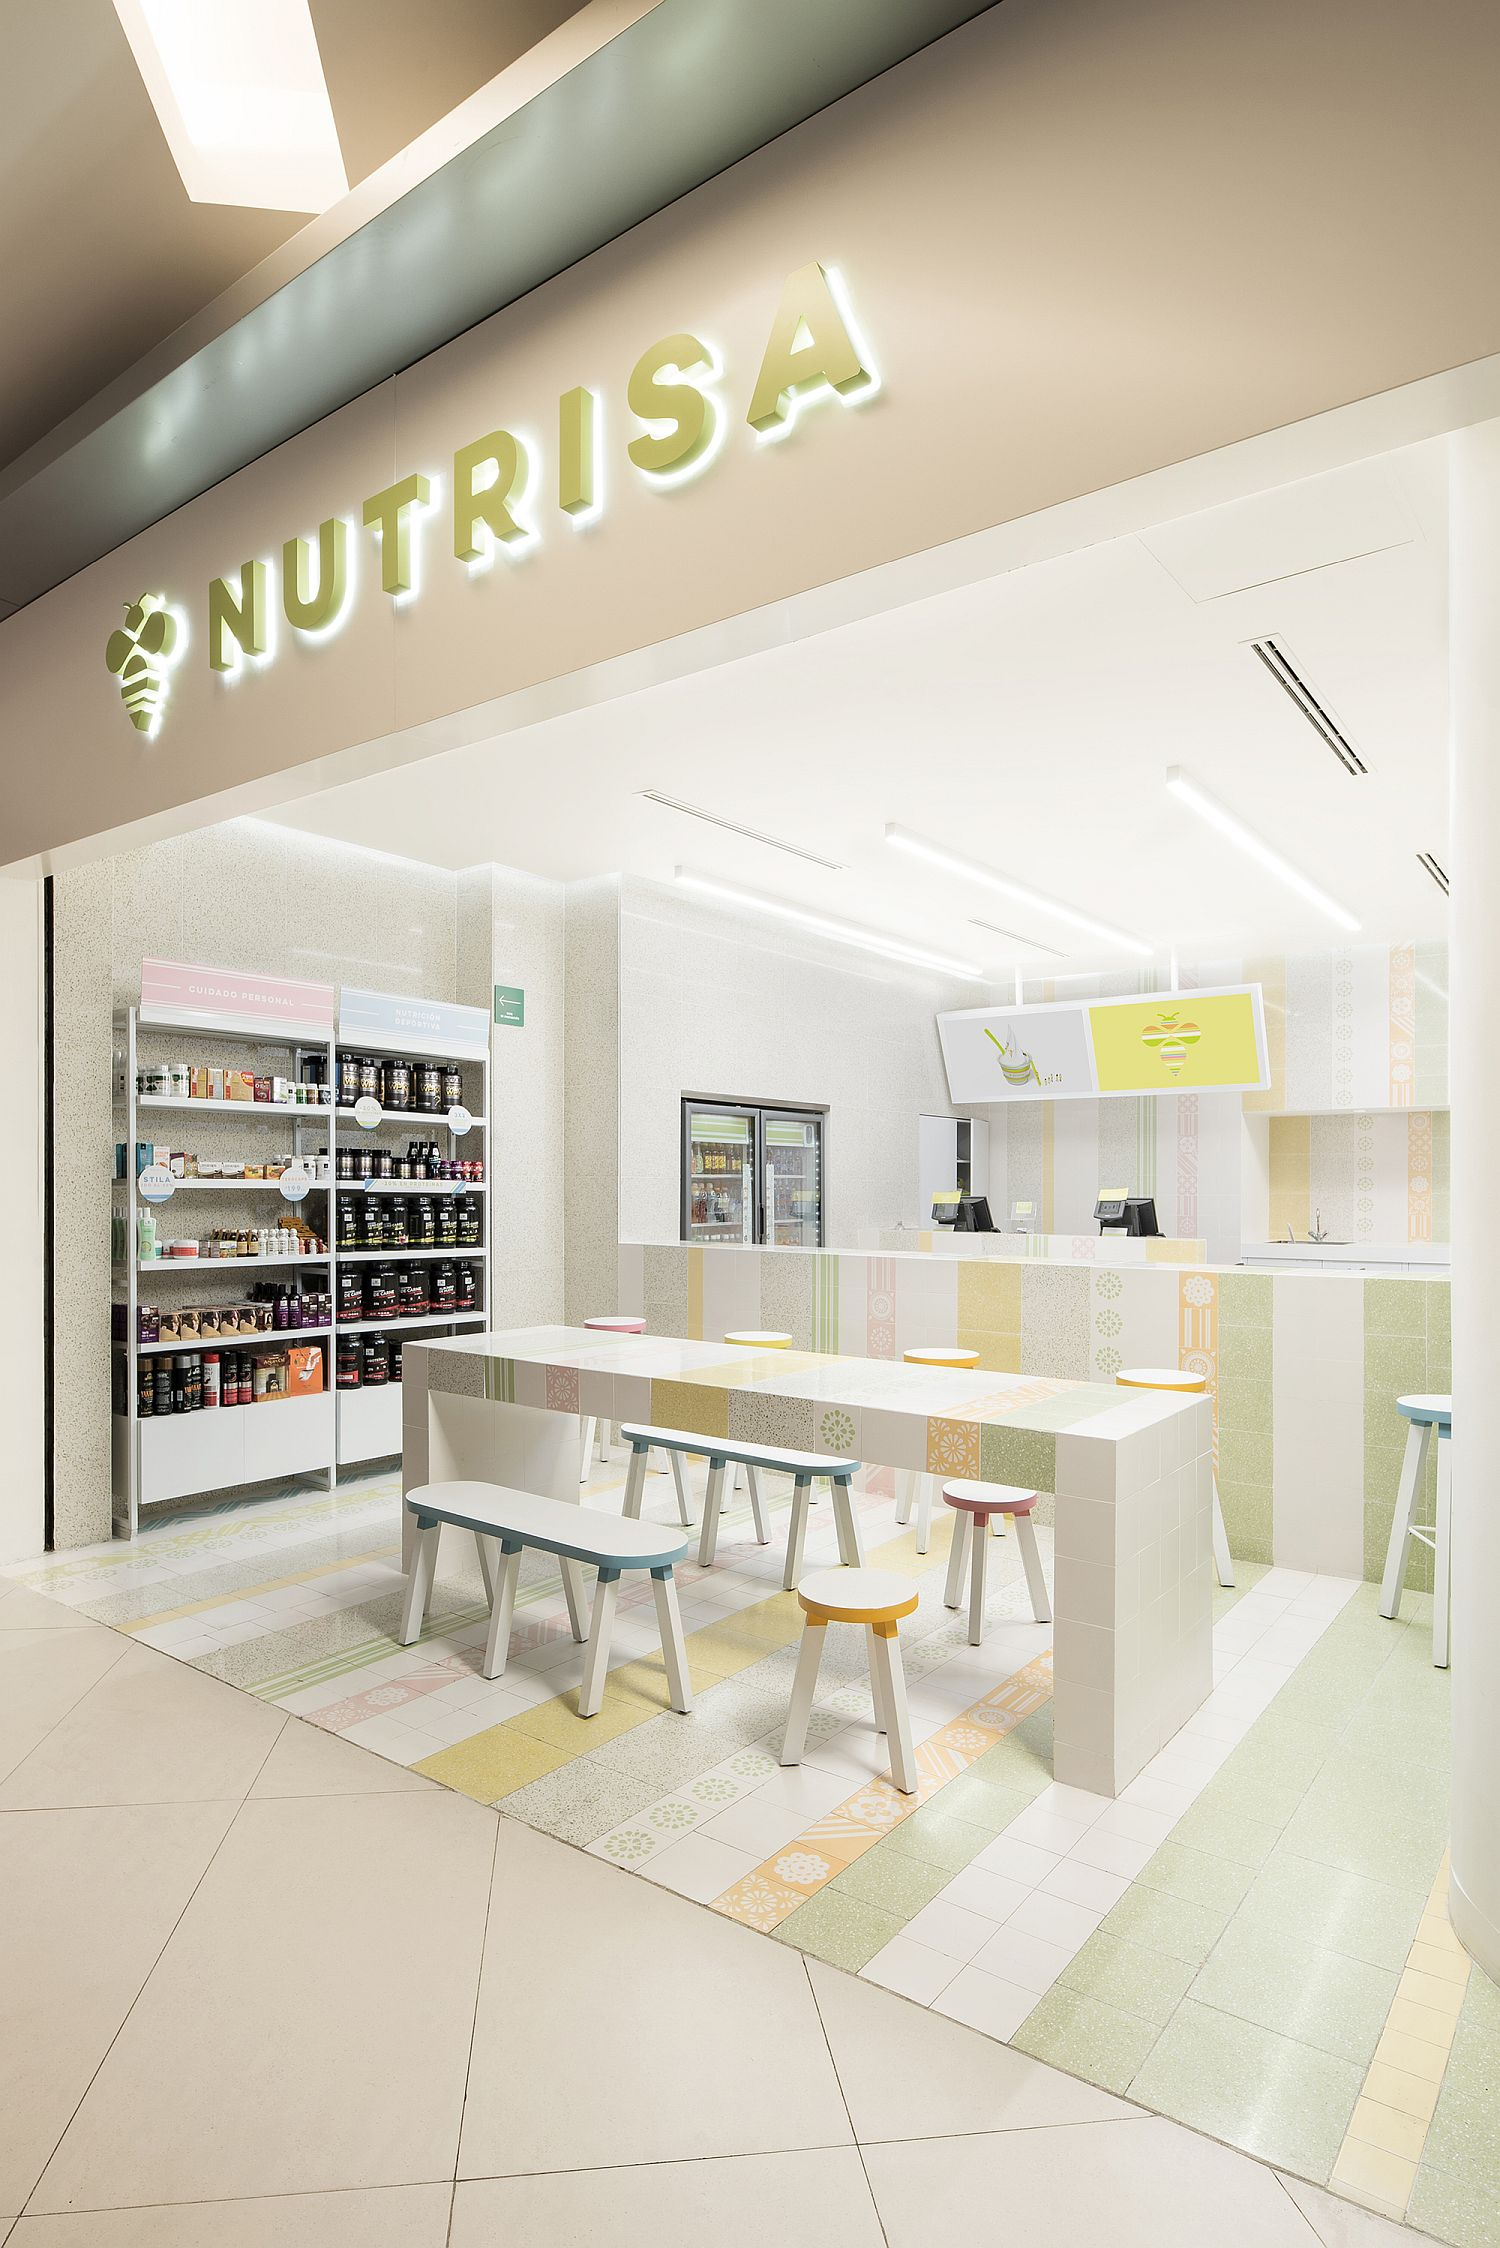 Breezy and cheerful makeover of natural ice cream store in Mexico